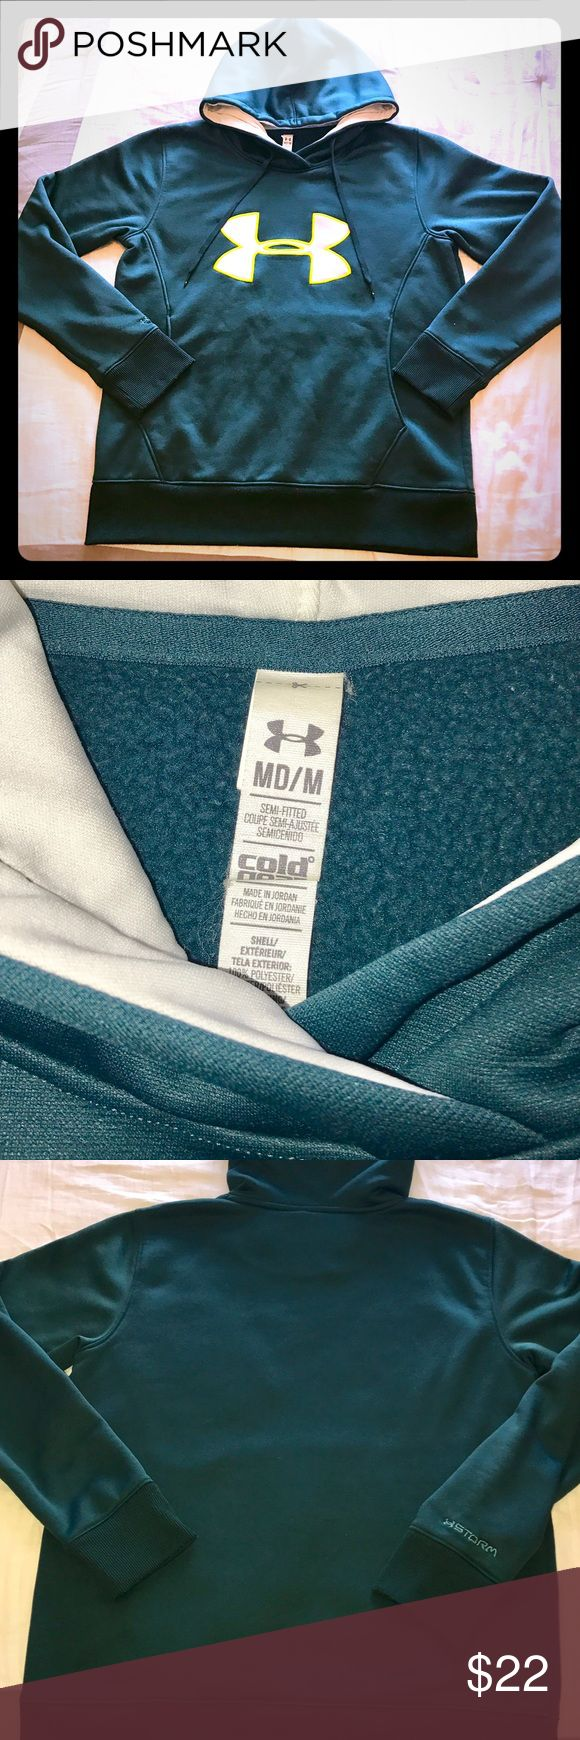 Under Armour Semi Fitted Women's Storm Hoodie; Med Under Armour Semi Fitted Women's Storm Hooded Sweatshirt; size Medium.  Gently worn less then a handful of times.  Looks and feels like new.  Very comfortable and warm go-to sweatshirt.  It's a blue green'ish color with logo letting itself is white lined with a neon yellow detail.  Comes from a pet/smoke free home. Under Armour Tops Sweatshirts & Hoodies